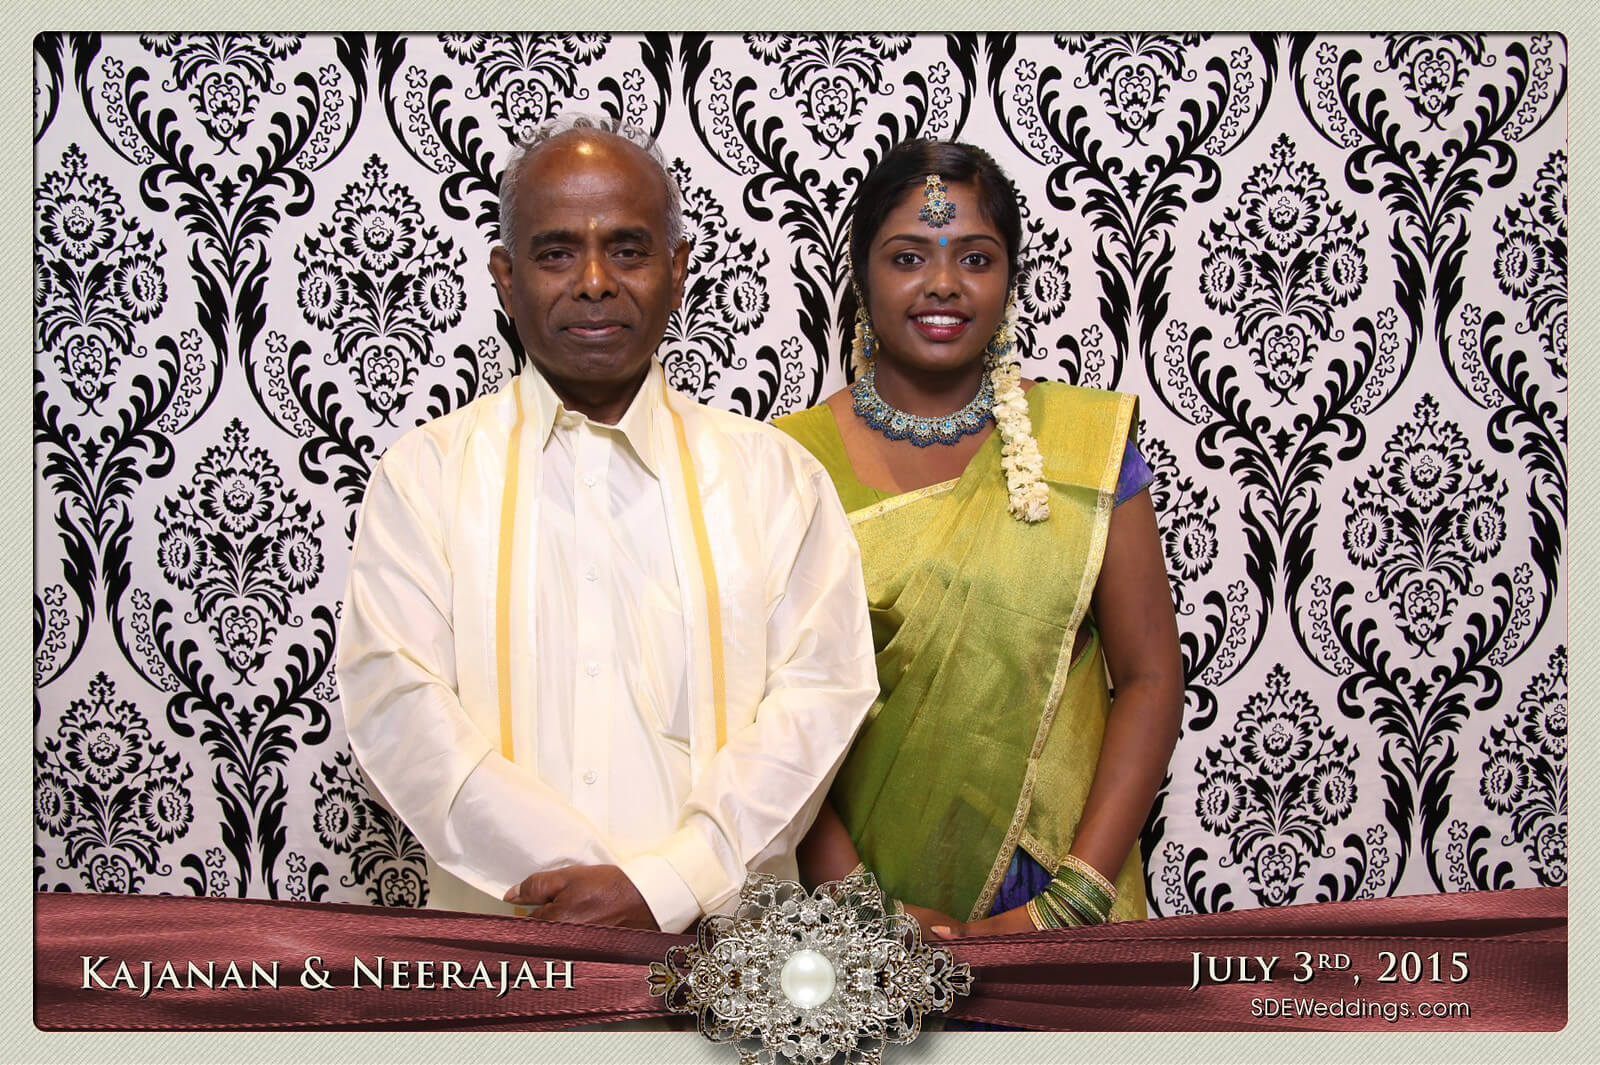 Toronto Scarborough Convention Centre Hindu Wedding Photo Booth Rental 4